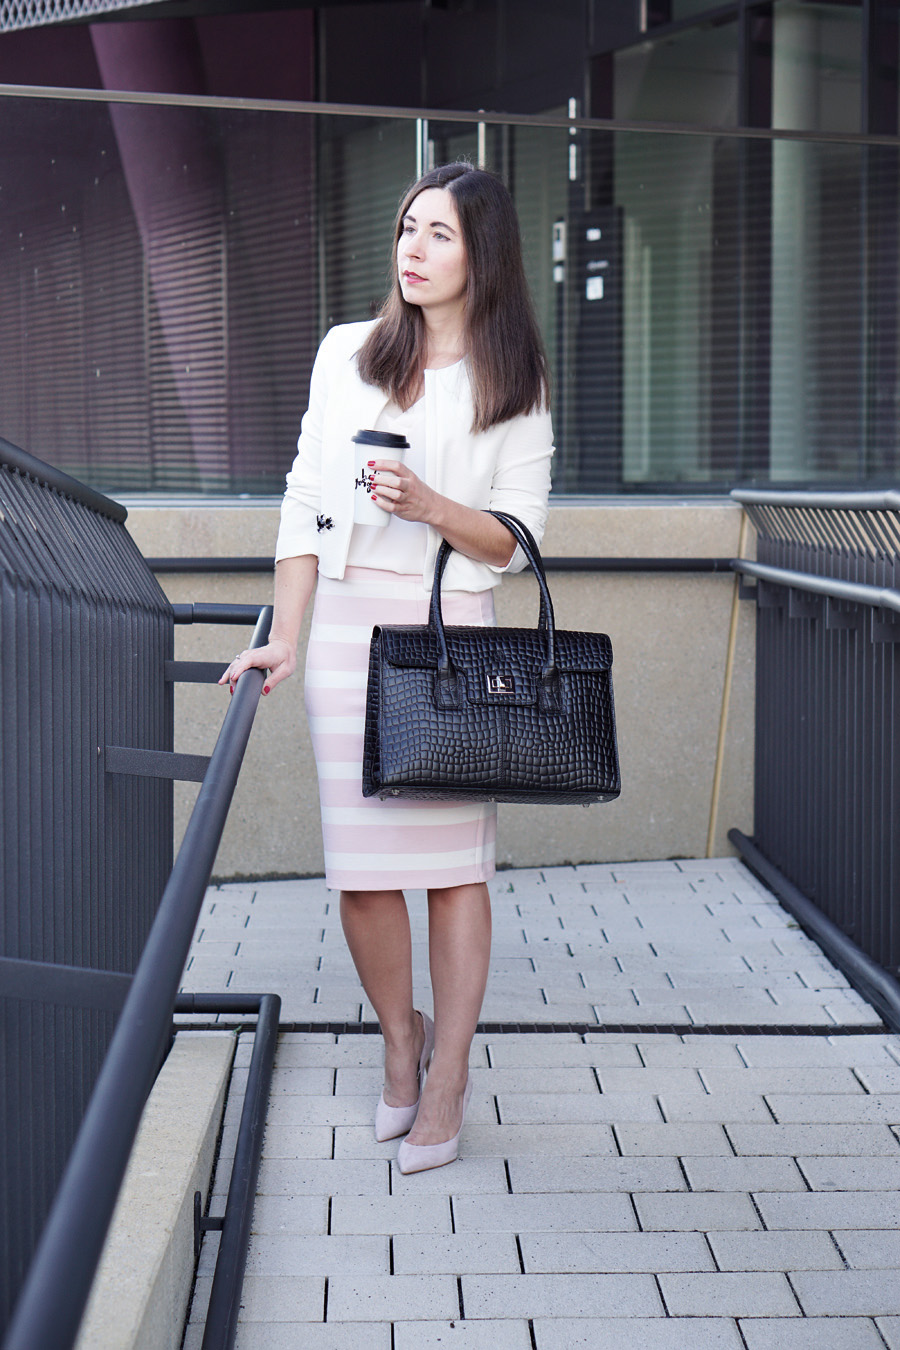 maxwell-scott-business-tasche-business-outfit-my-mirror-world-2